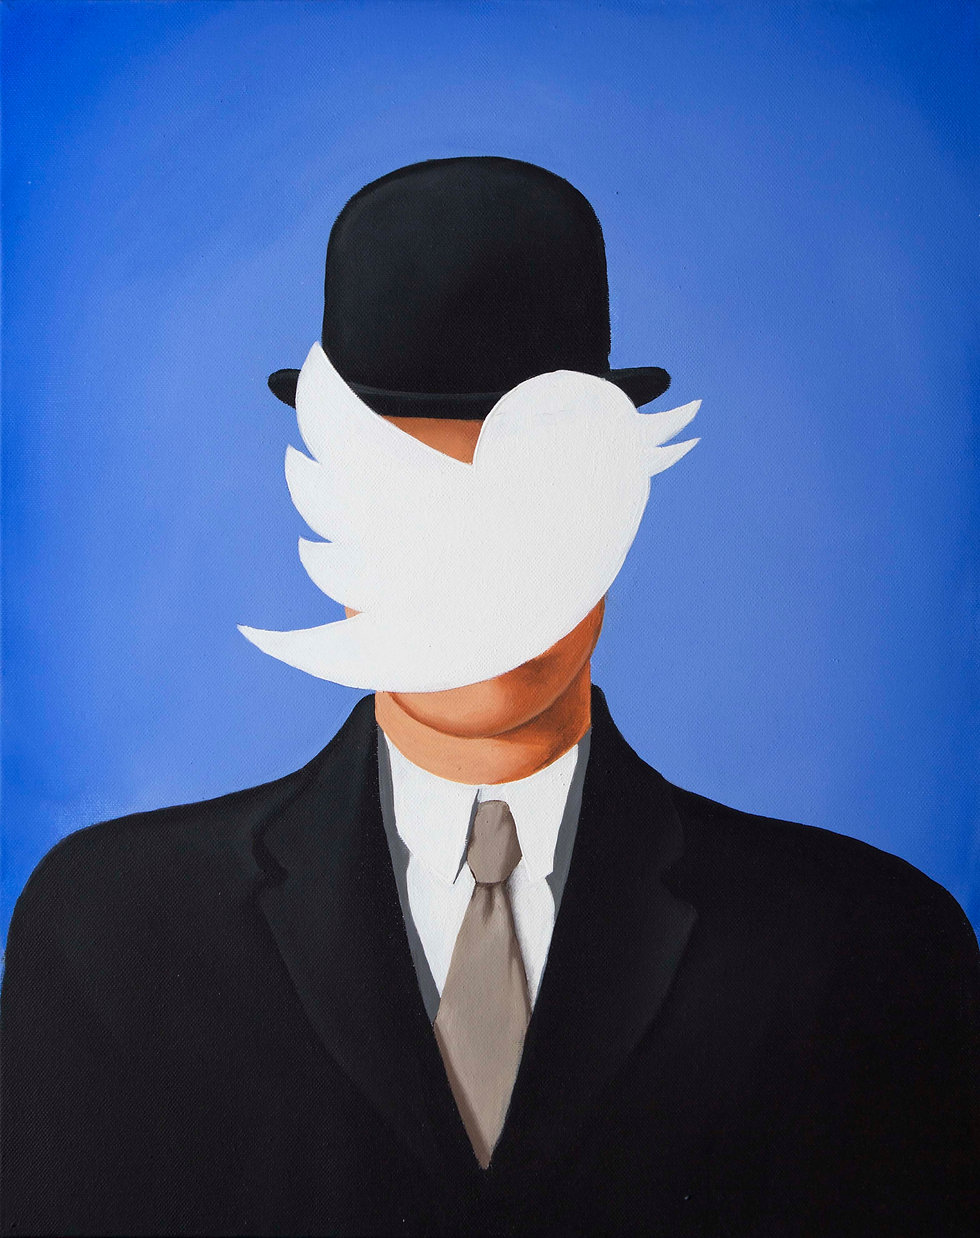 Man in the bowler hat, magritte, nicola piscopo, twitter, bird, art